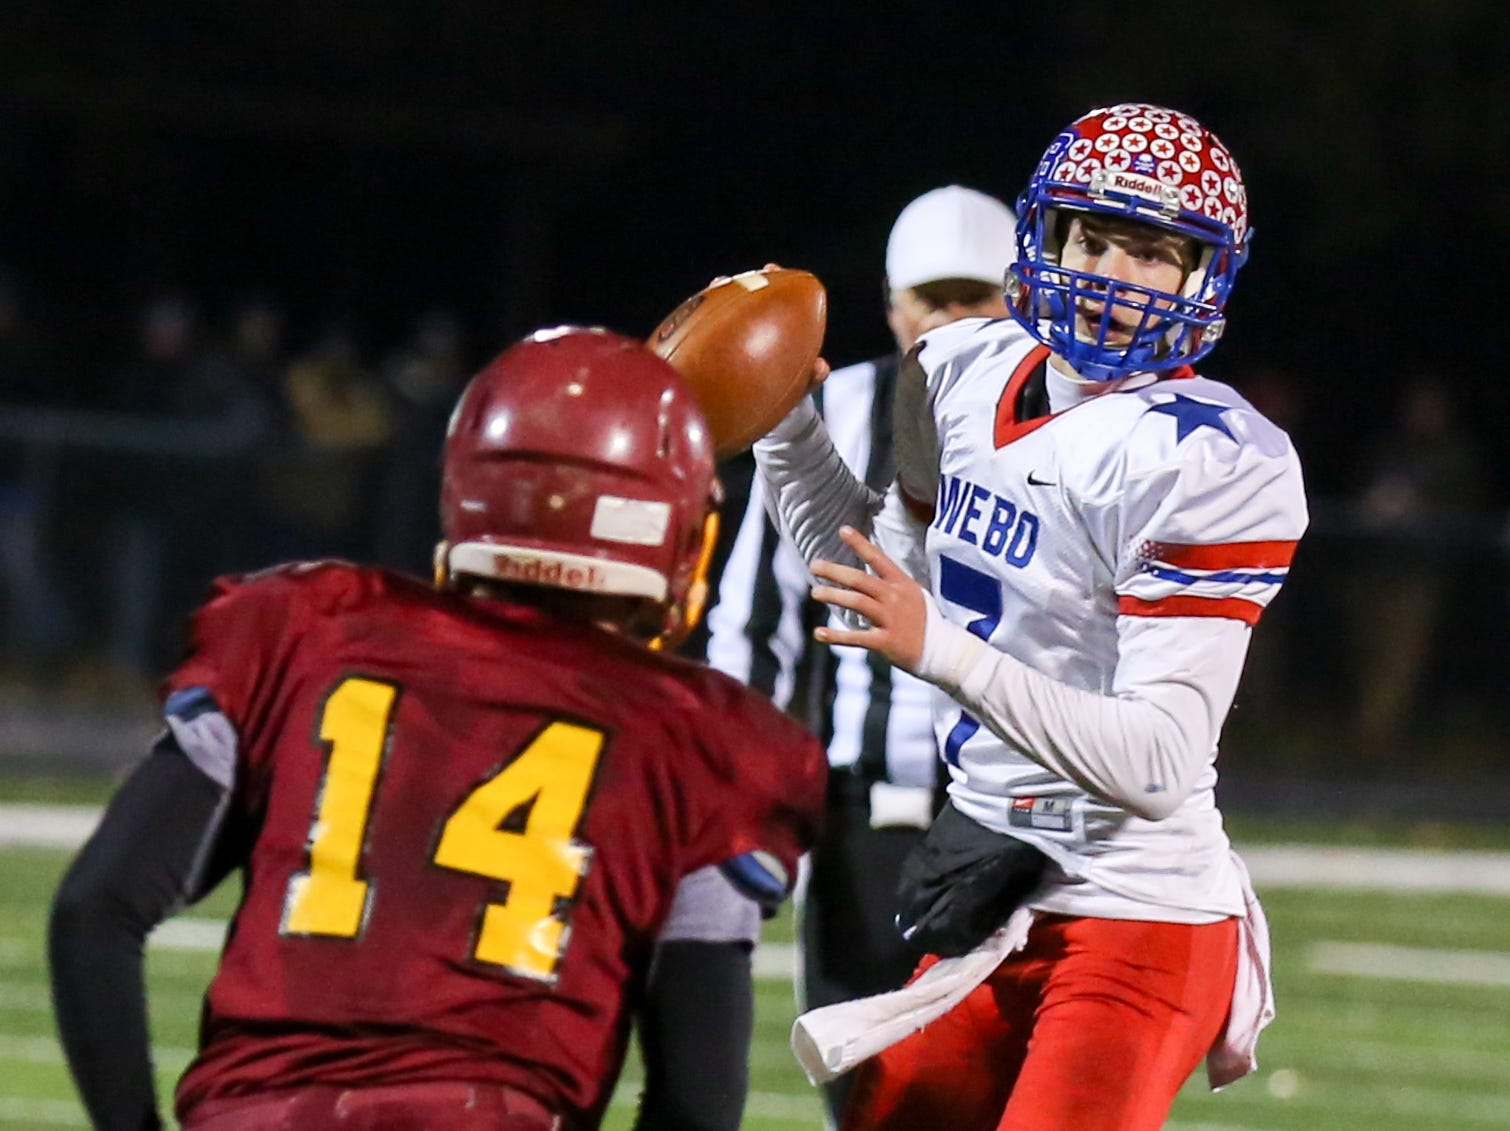 Western Boone's Spencer Wright (7) looks for an open receiver during the first half of Indianapolis Scecina vs Western Boone High School varsity football in the Class 2A Regional Championship held at Roncalli High School, Friday, November 9, 2018.